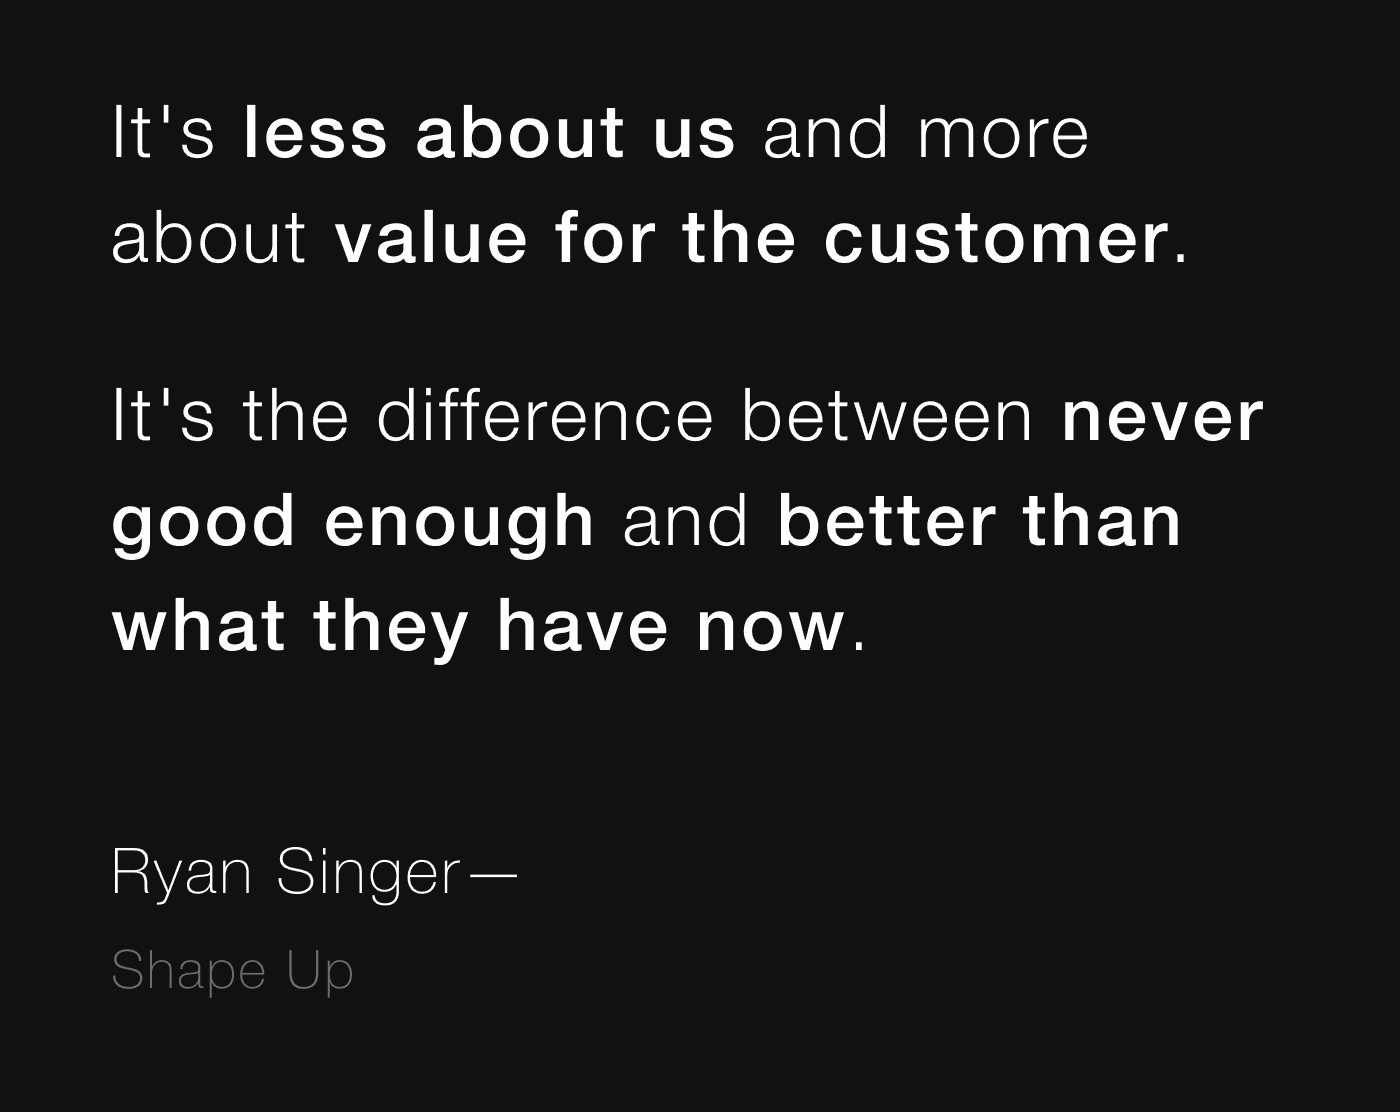 Quote from Ryan Singer: It's less about us and more about value for the customer. It's the difference between never good enough and better than what they have now.